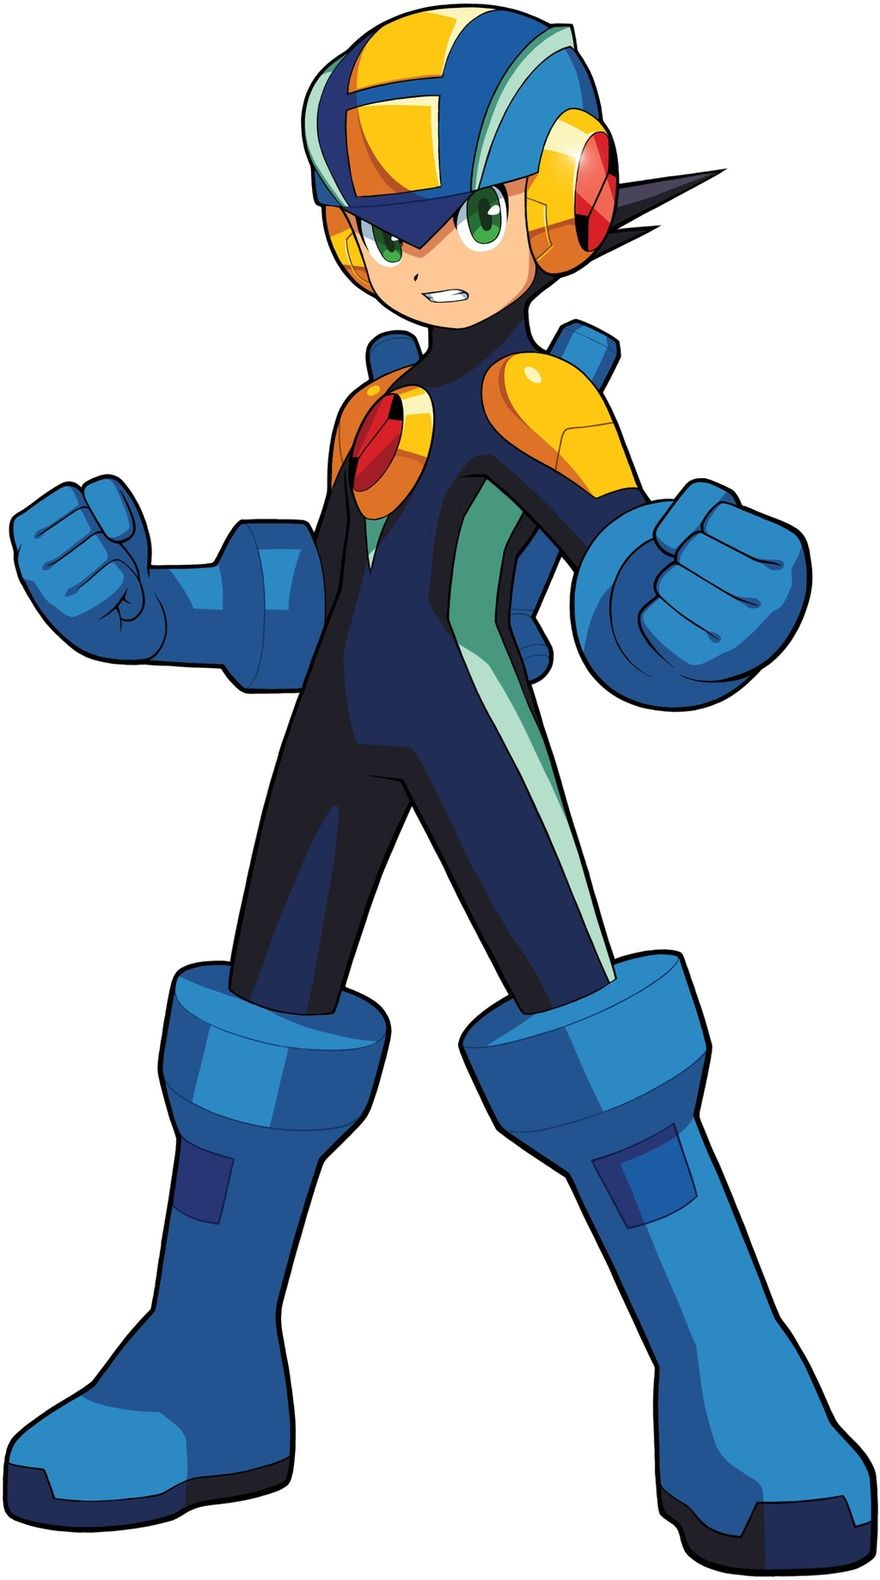 i don t know about you but i always wish a megaman キャラクターa